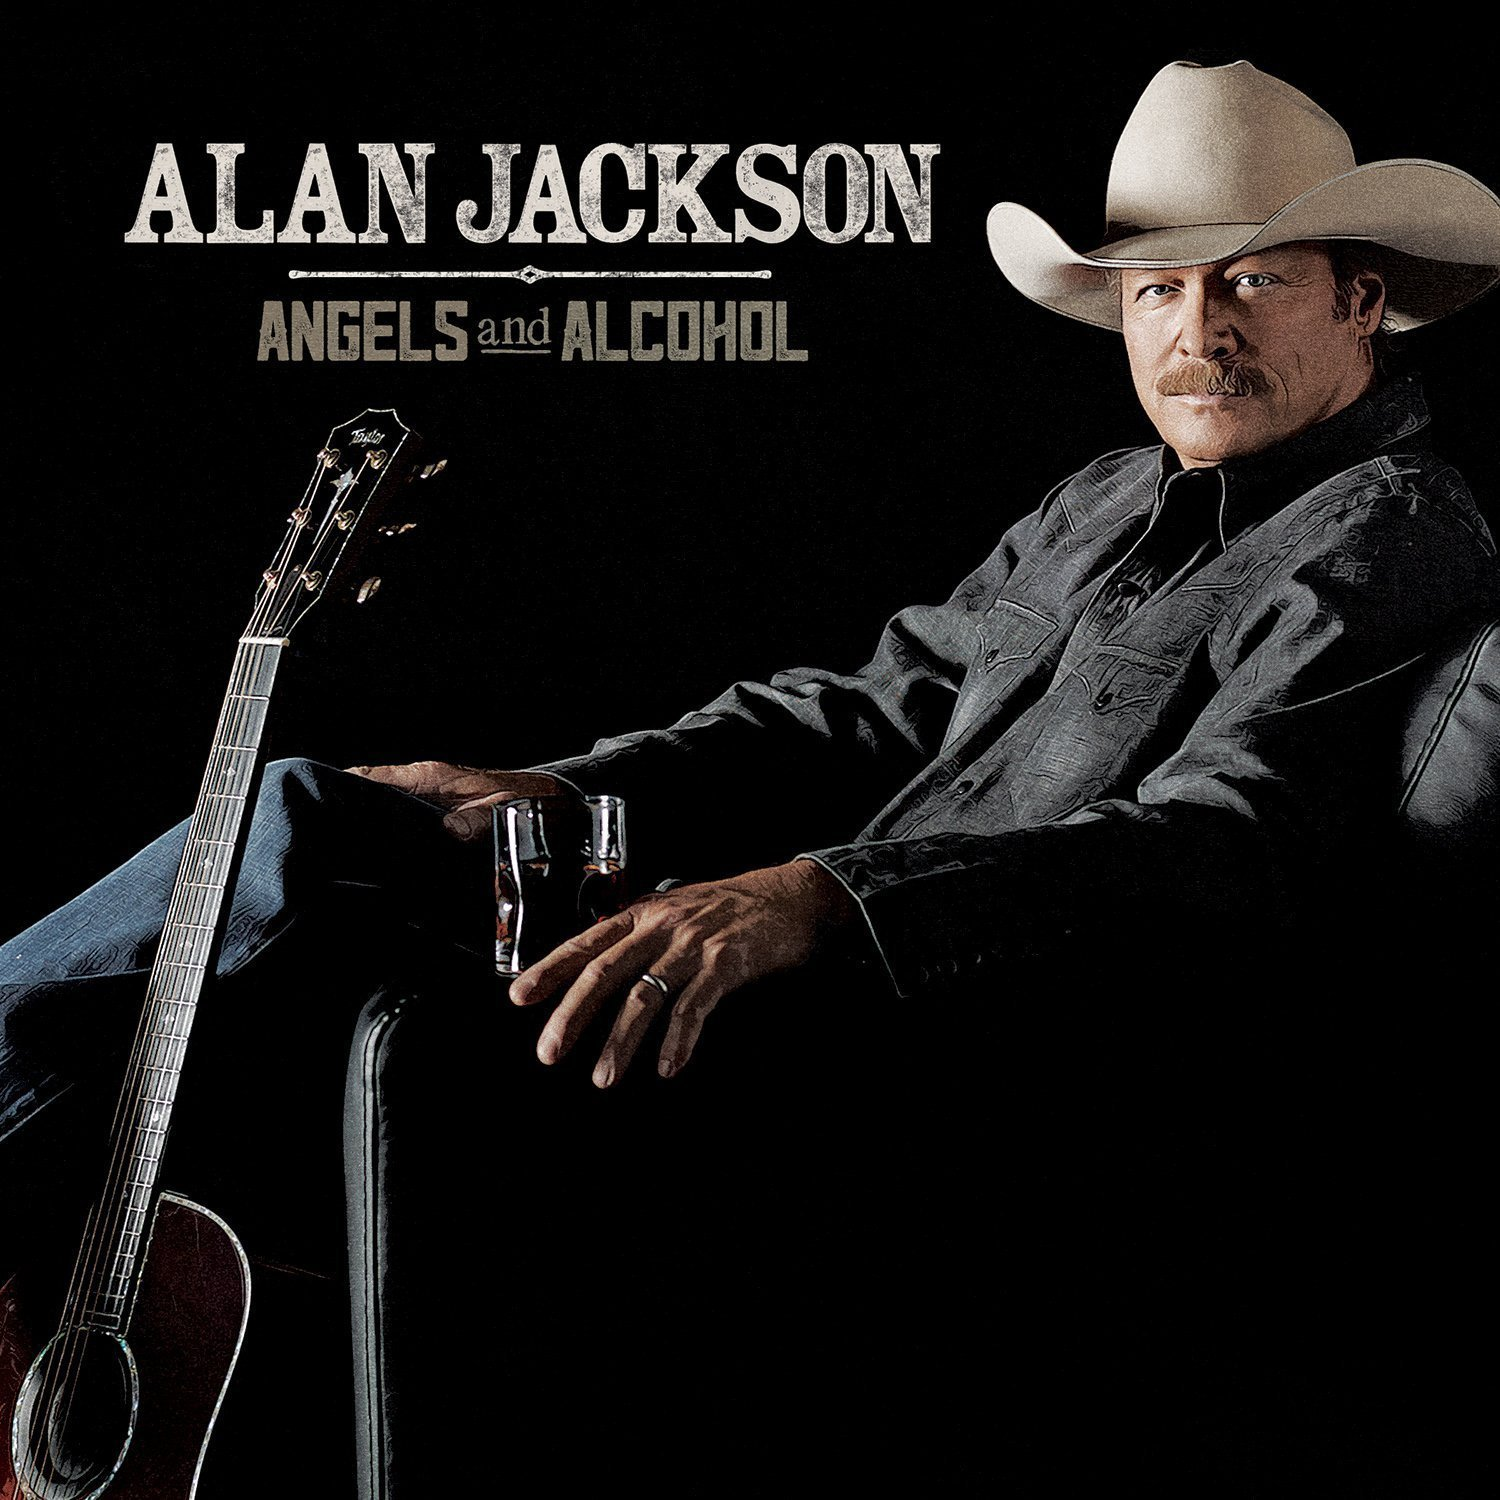 Alan Jackson - Angels and Alcohol.jpg